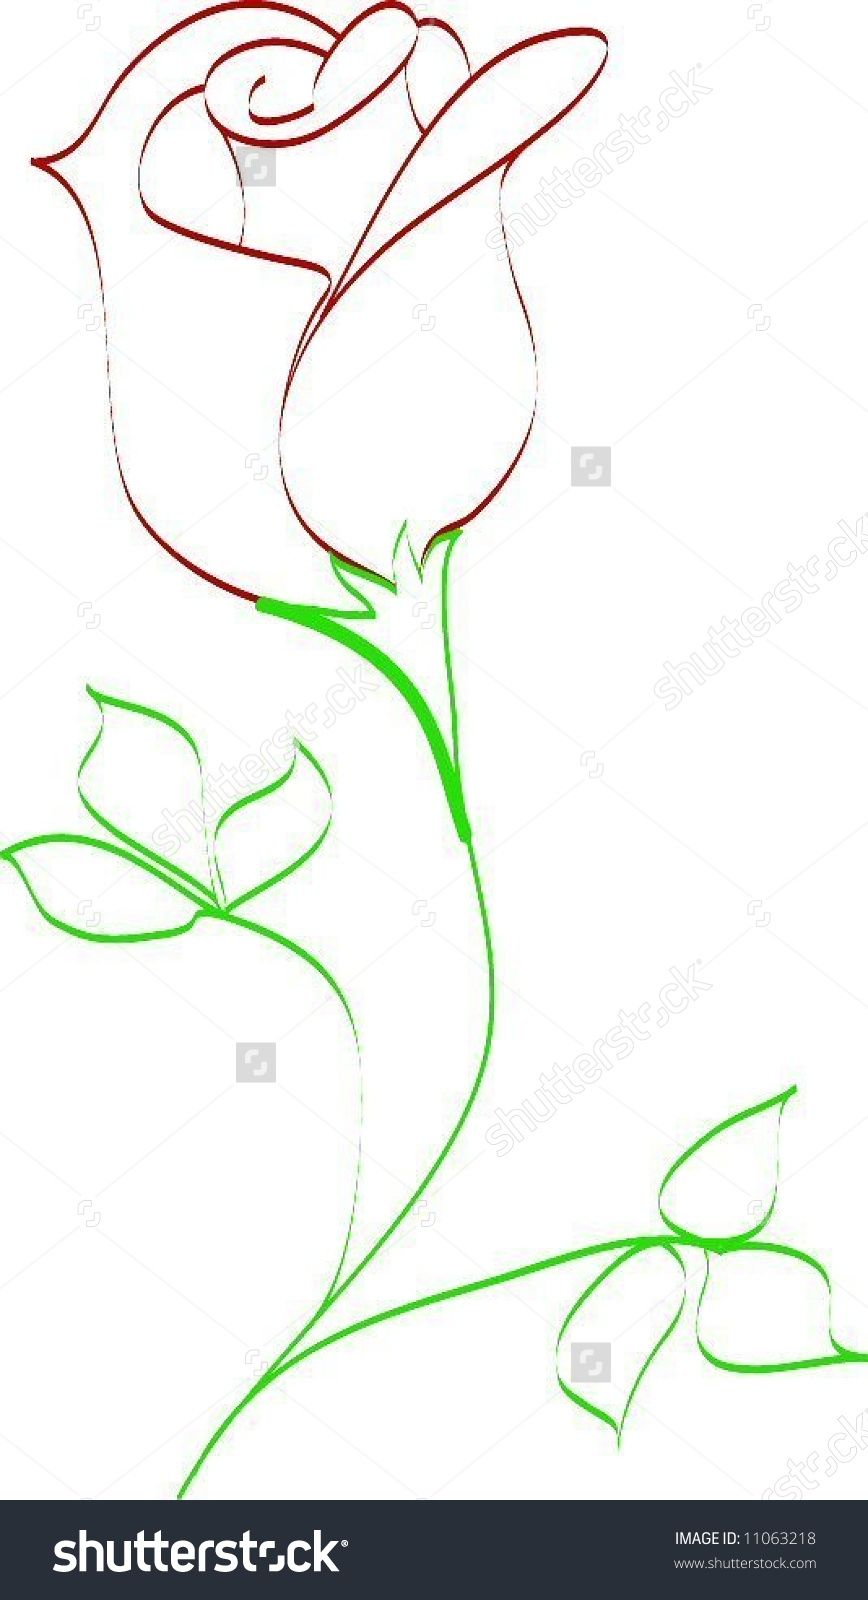 Line Art Drawing Easy : Simple line drawing of rose bud stock vector illustration